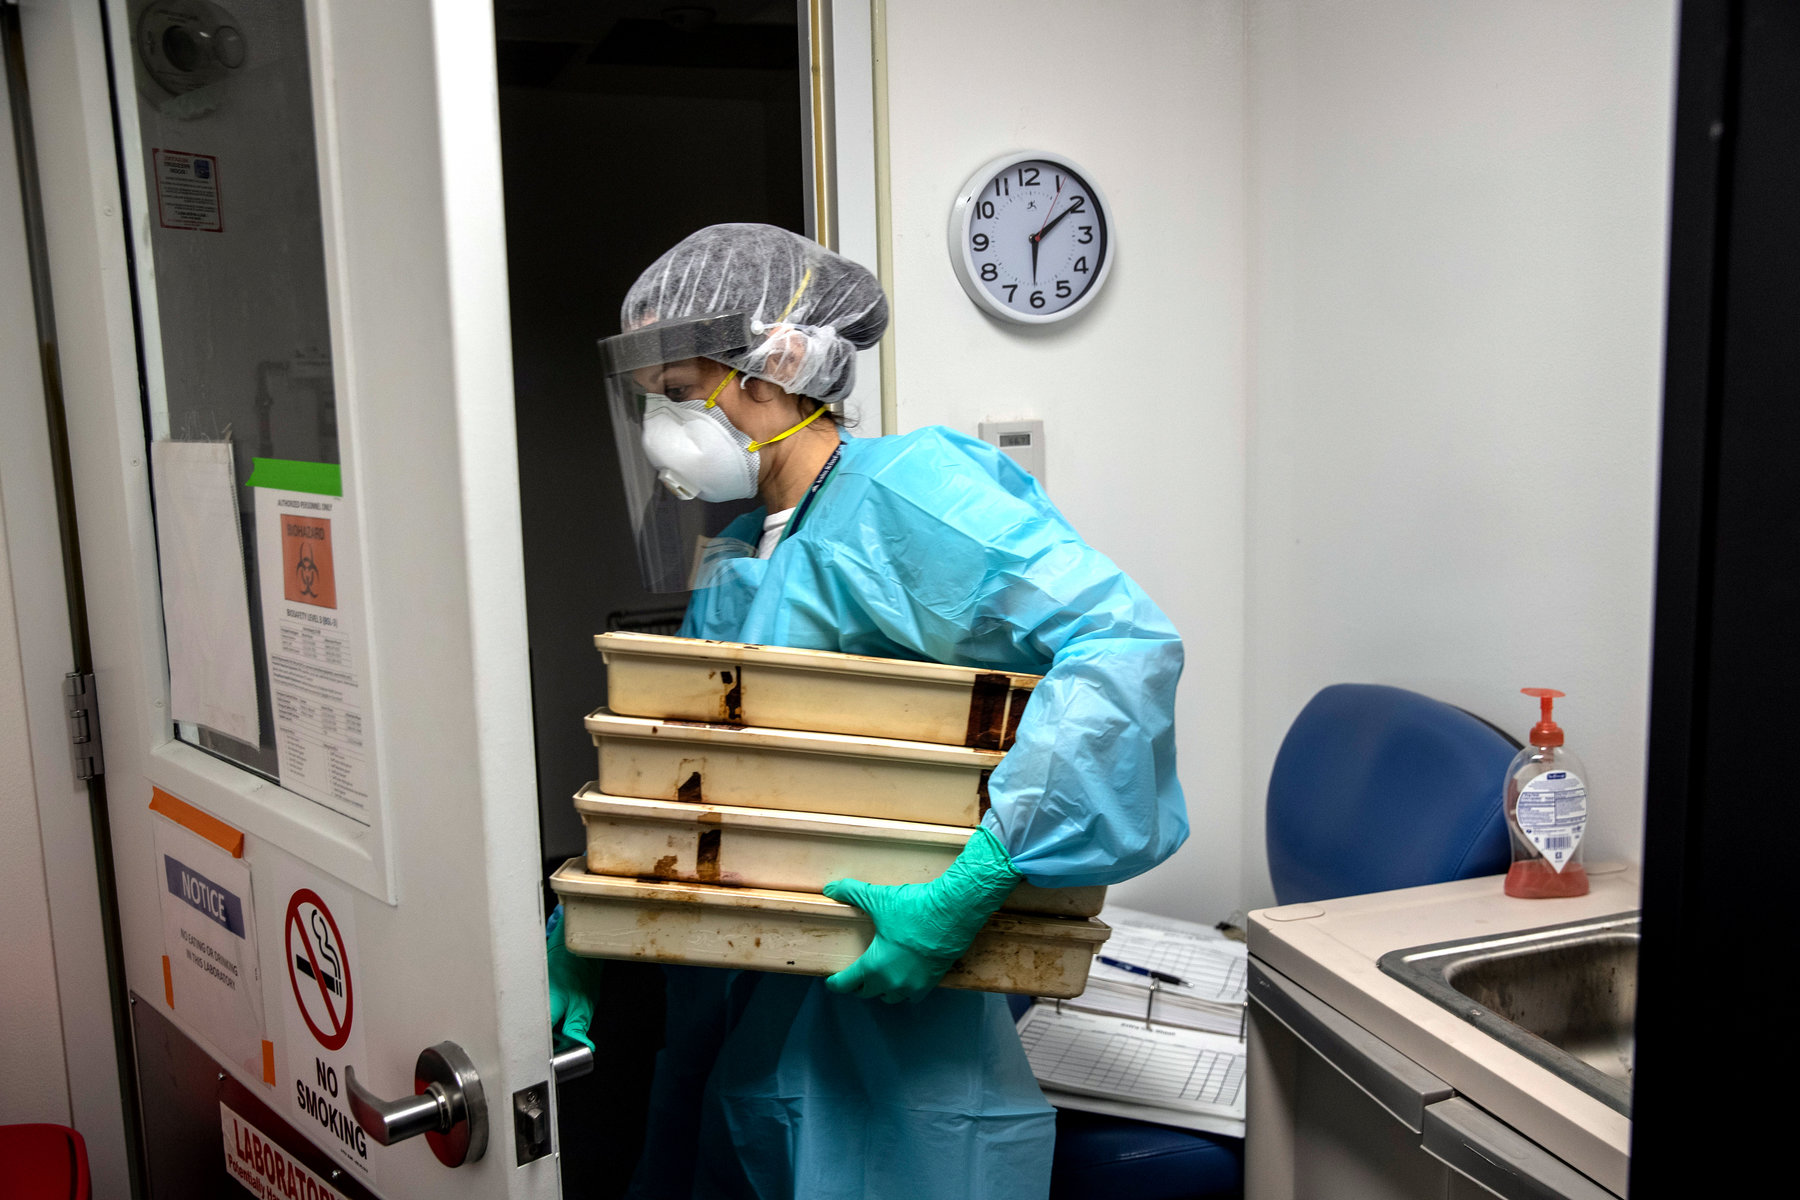 Coronavirus Treatment: Hundreds of Scientists Scramble to Find One ...